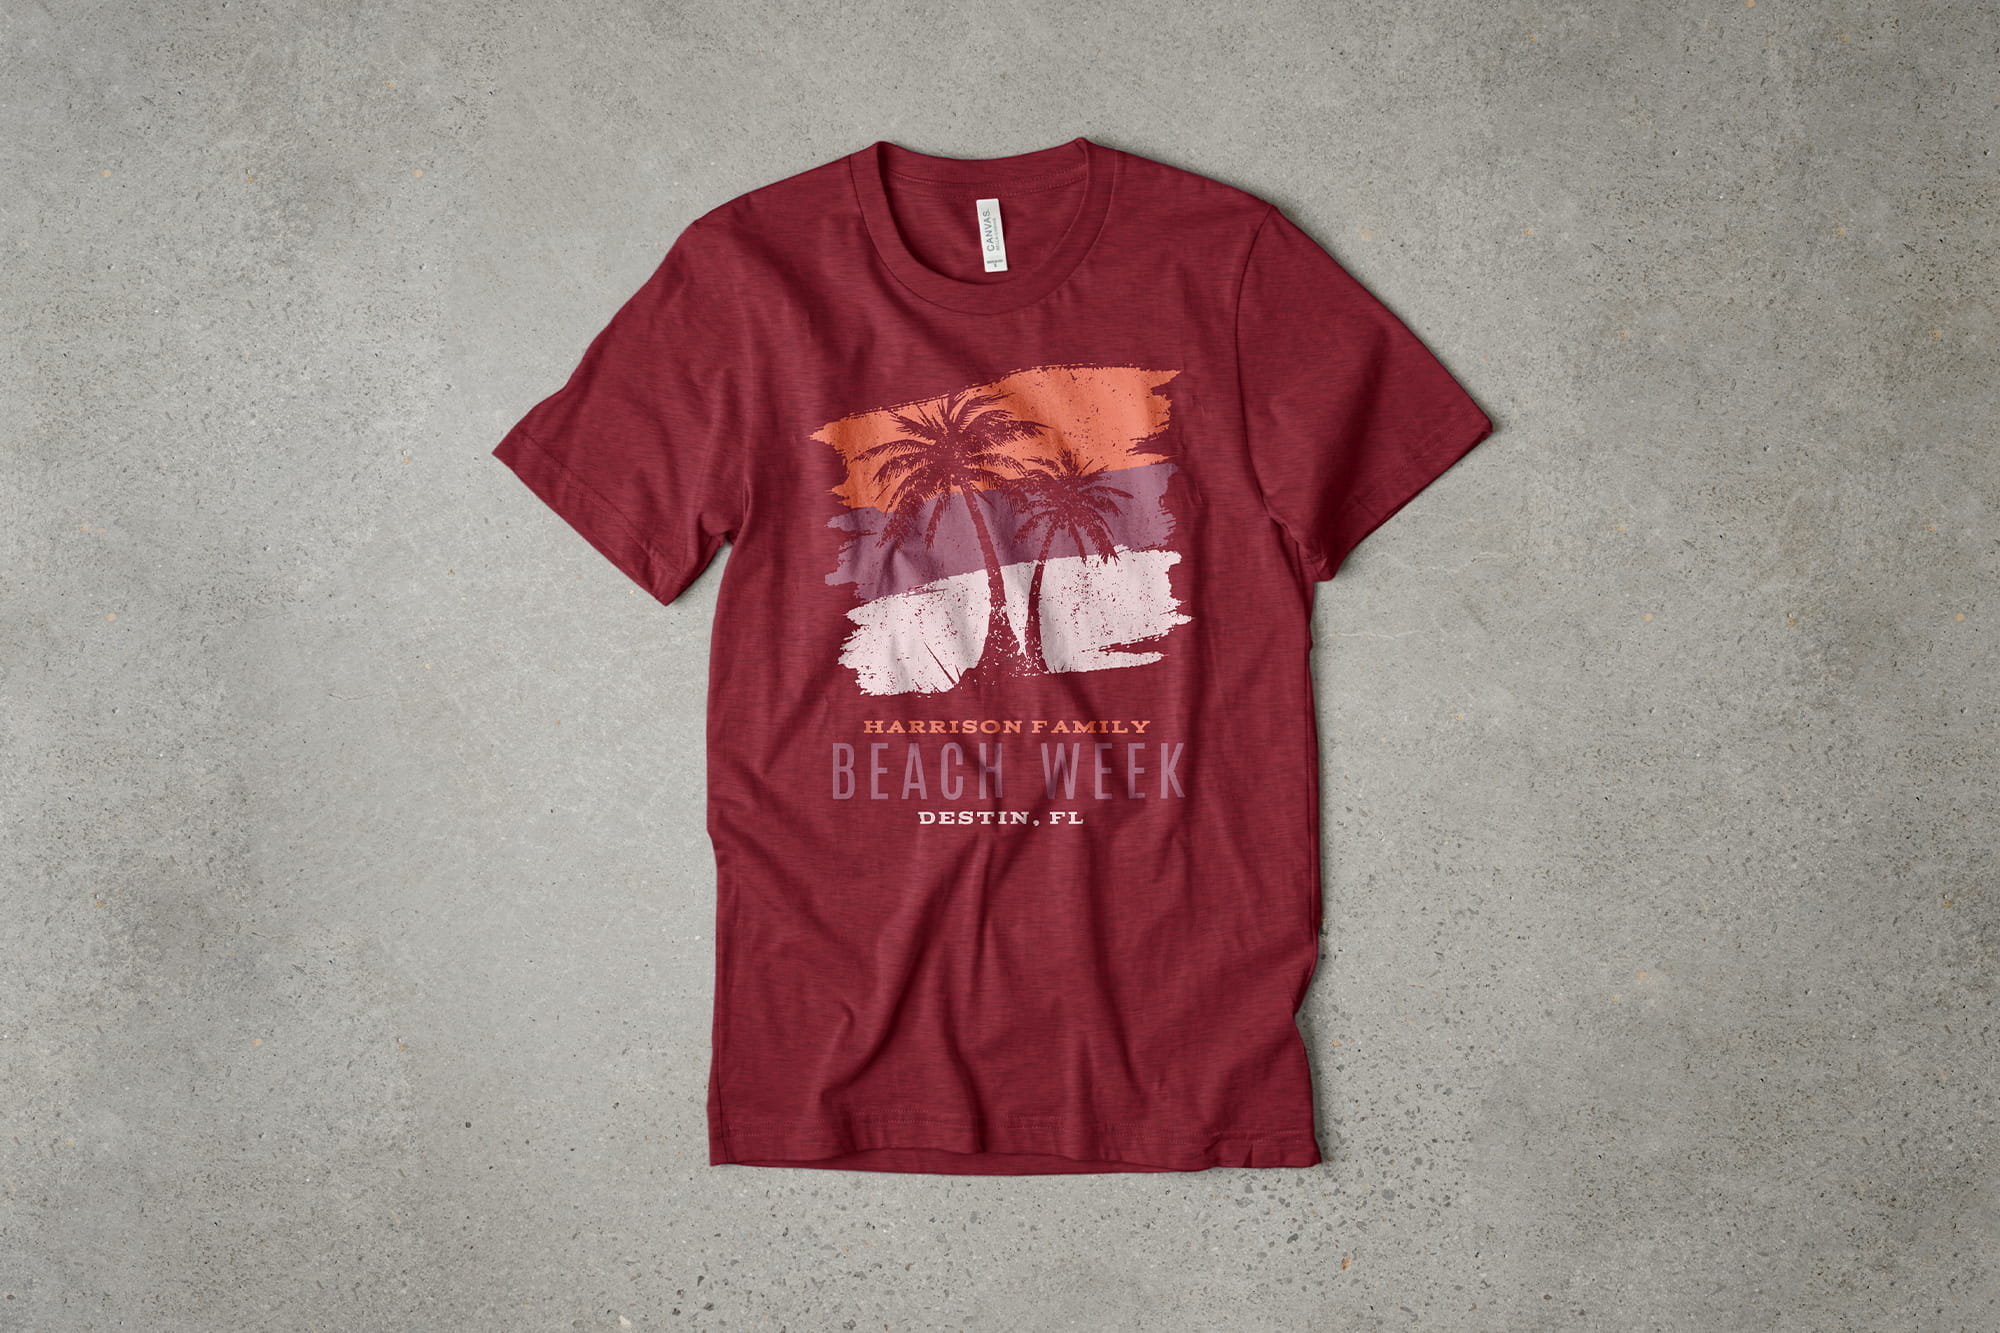 Example of t-shirt design using analogous colors.